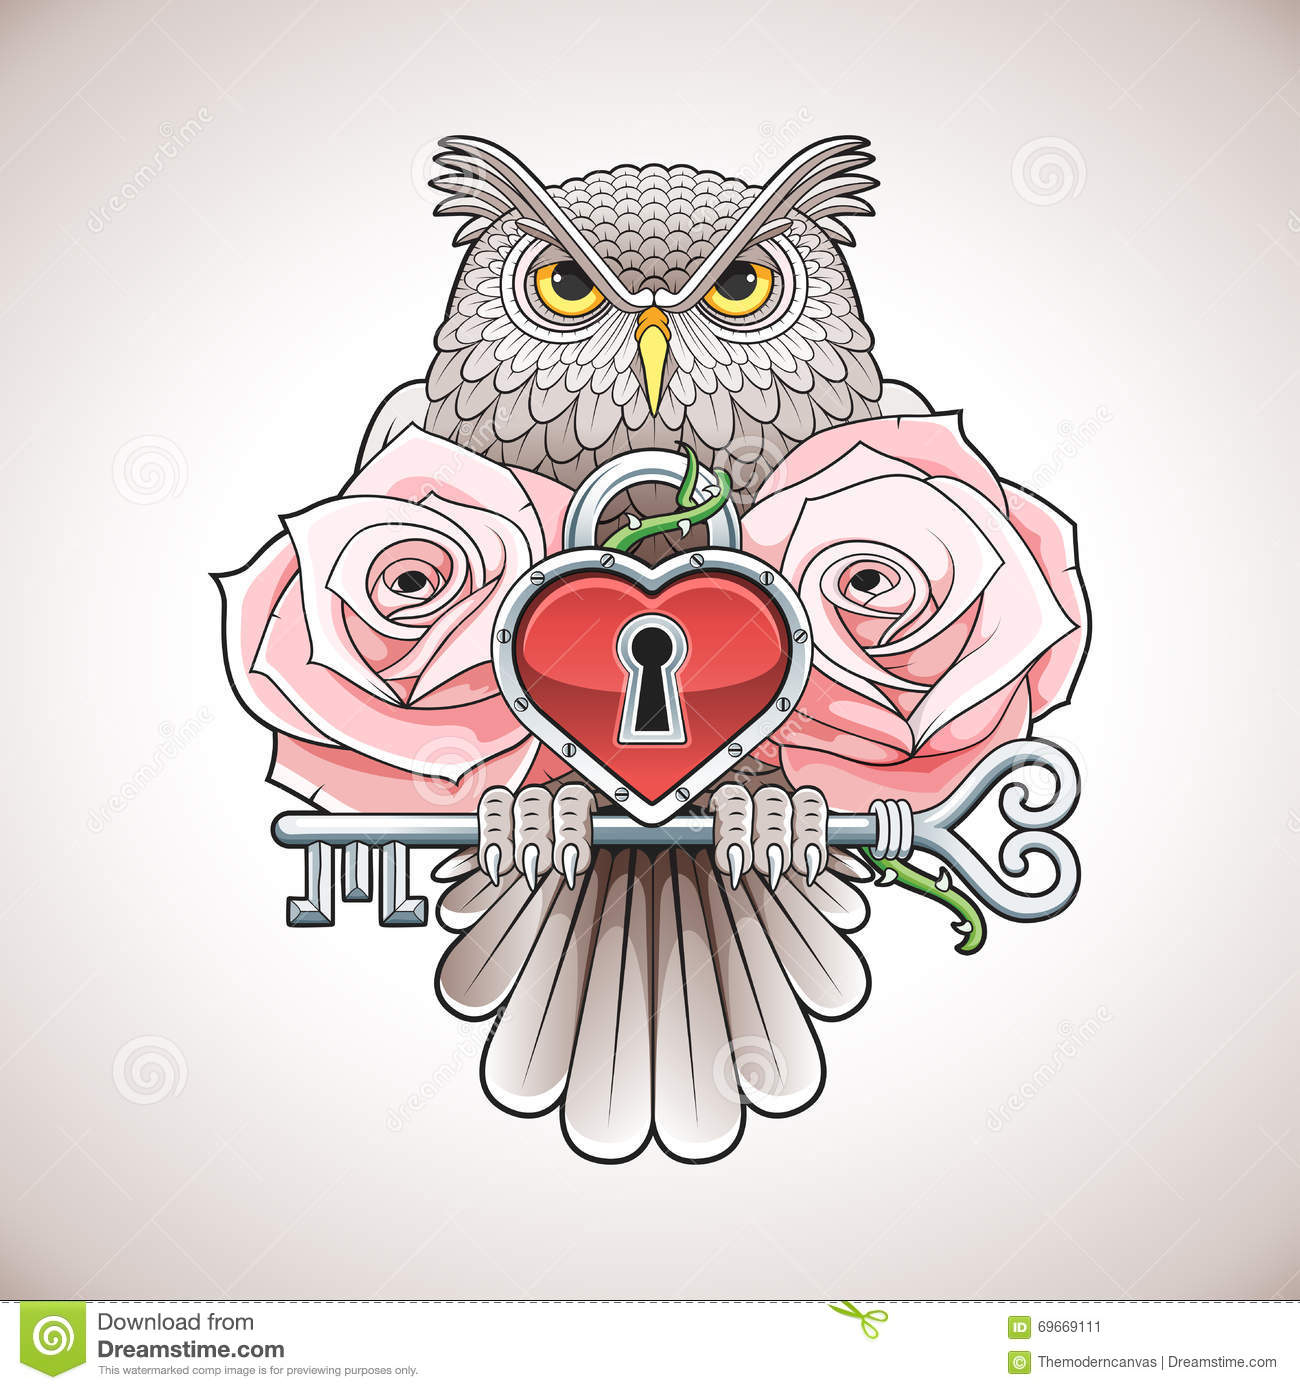 beautiful colour tattoo design of an owl holding a key with a heart locket and pink roses stock. Black Bedroom Furniture Sets. Home Design Ideas